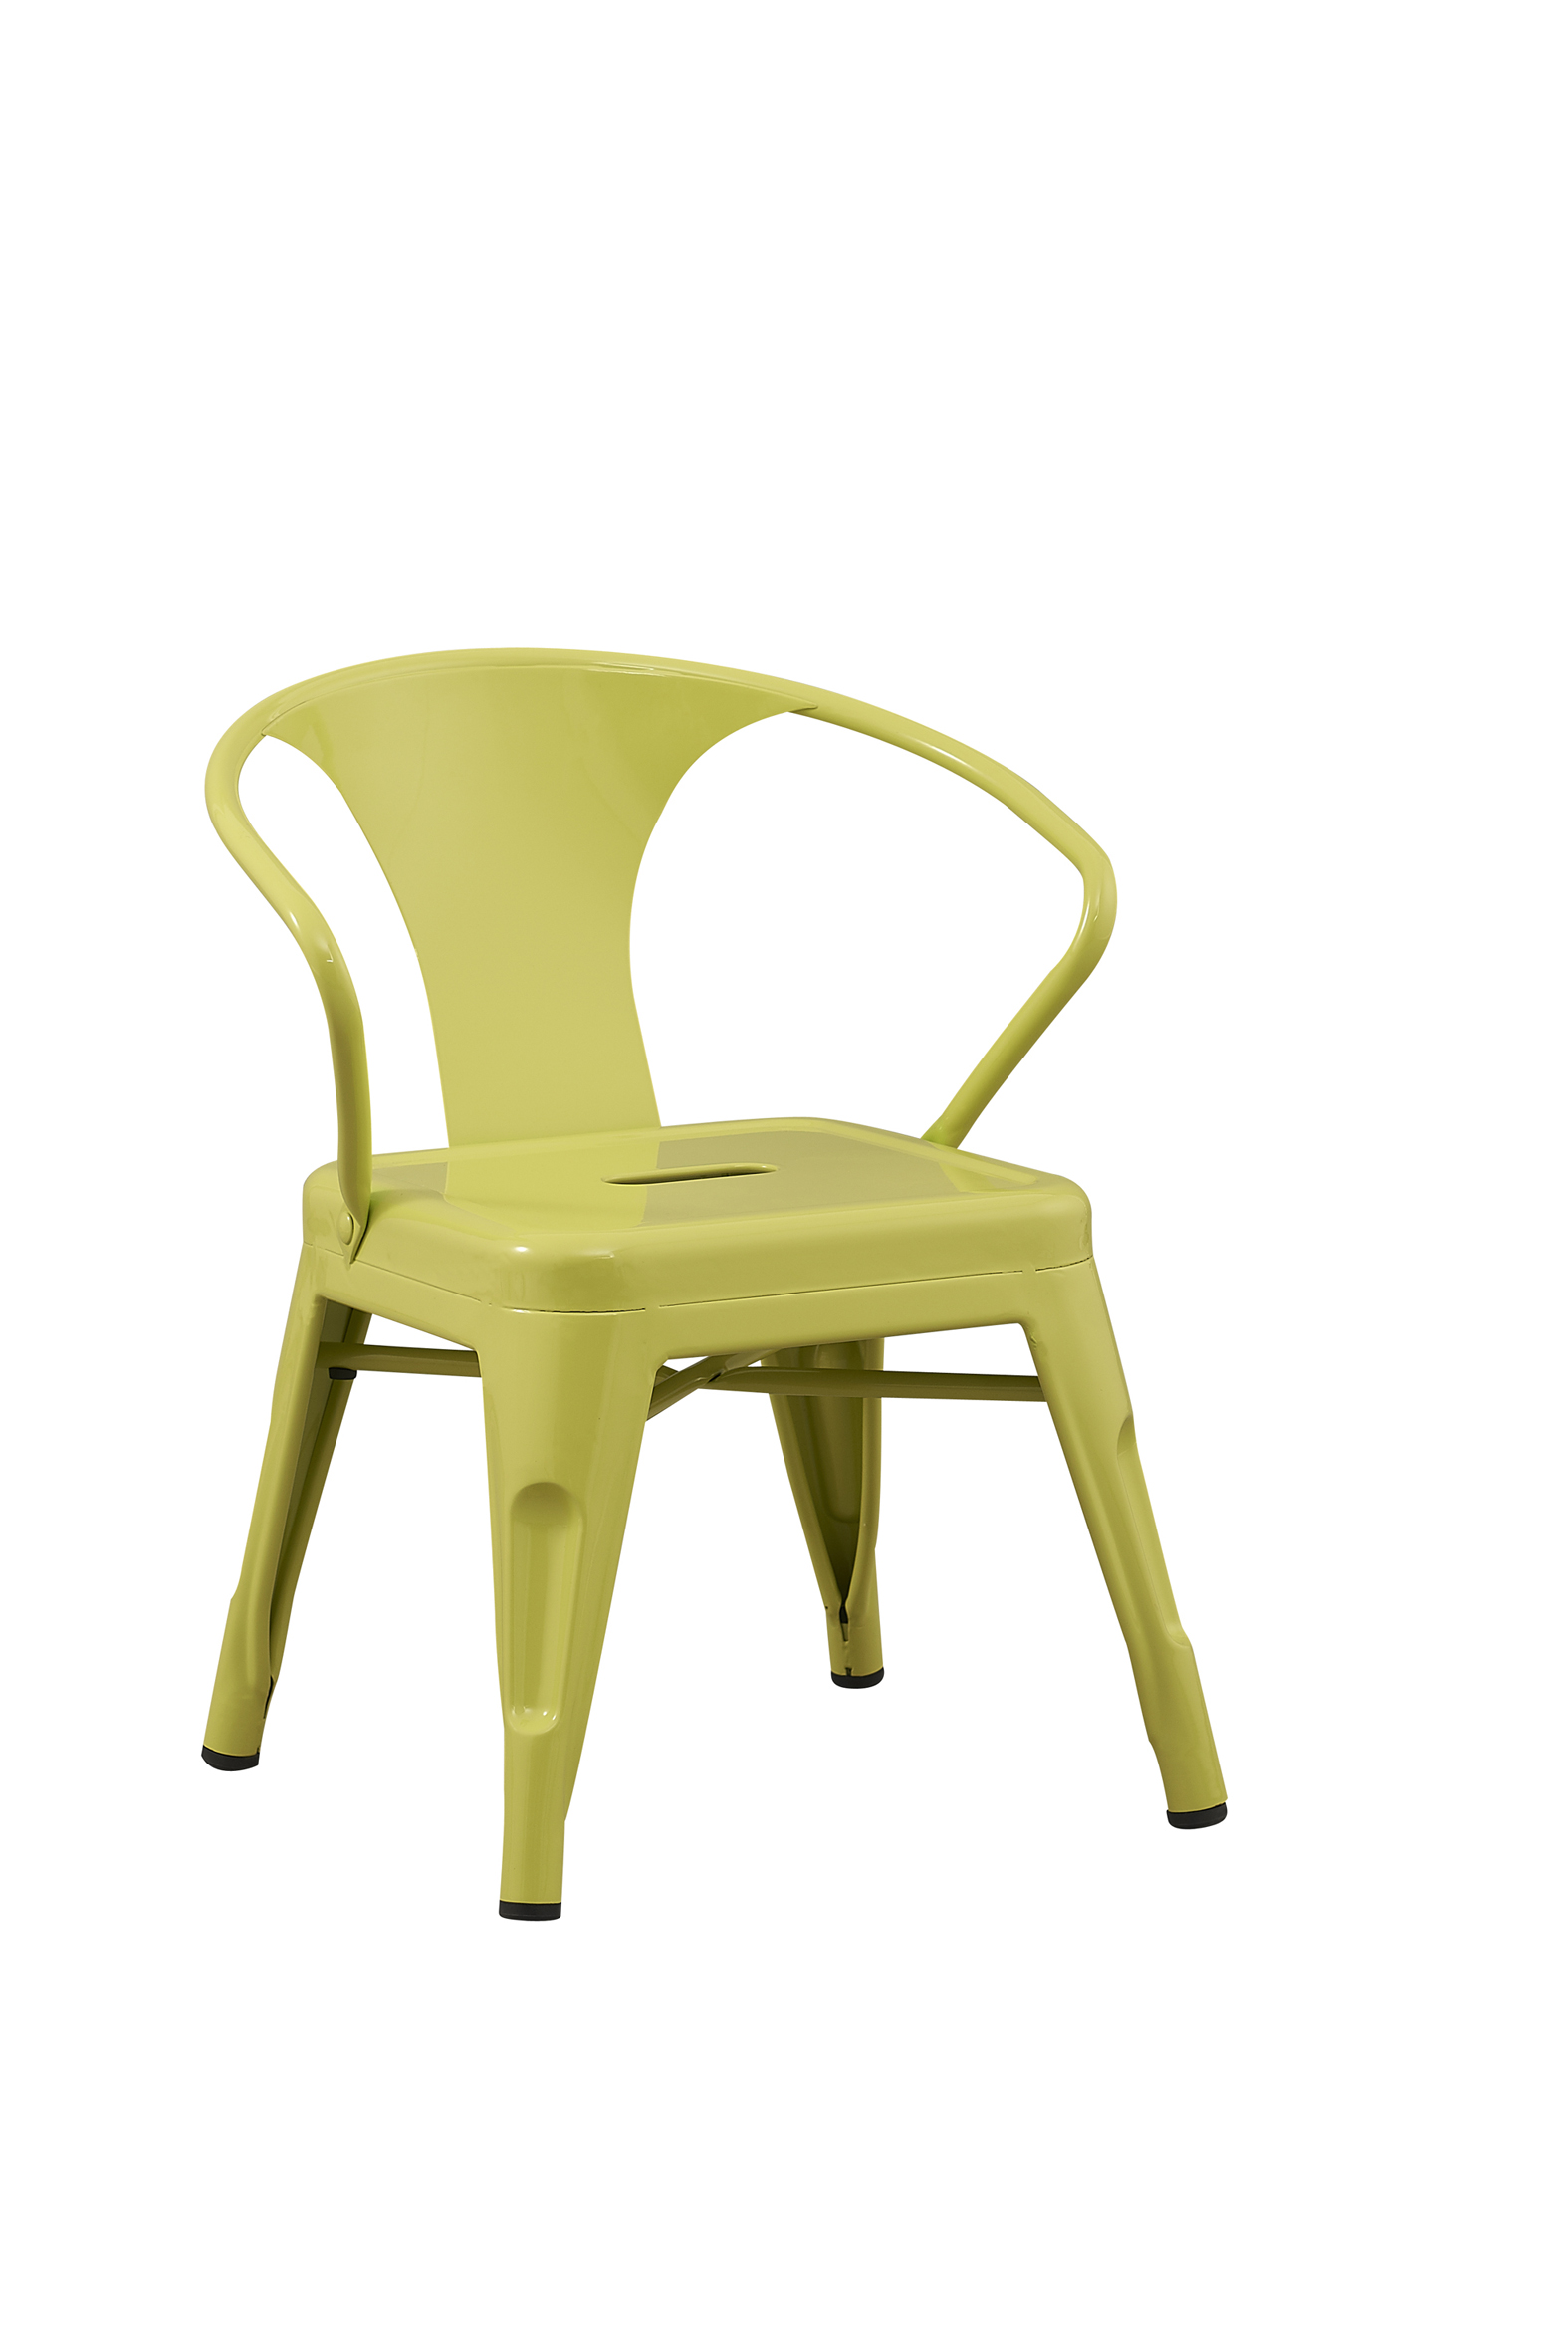 kids metal chairs stool chair fur solid rugged steel stacking industrial limeade play